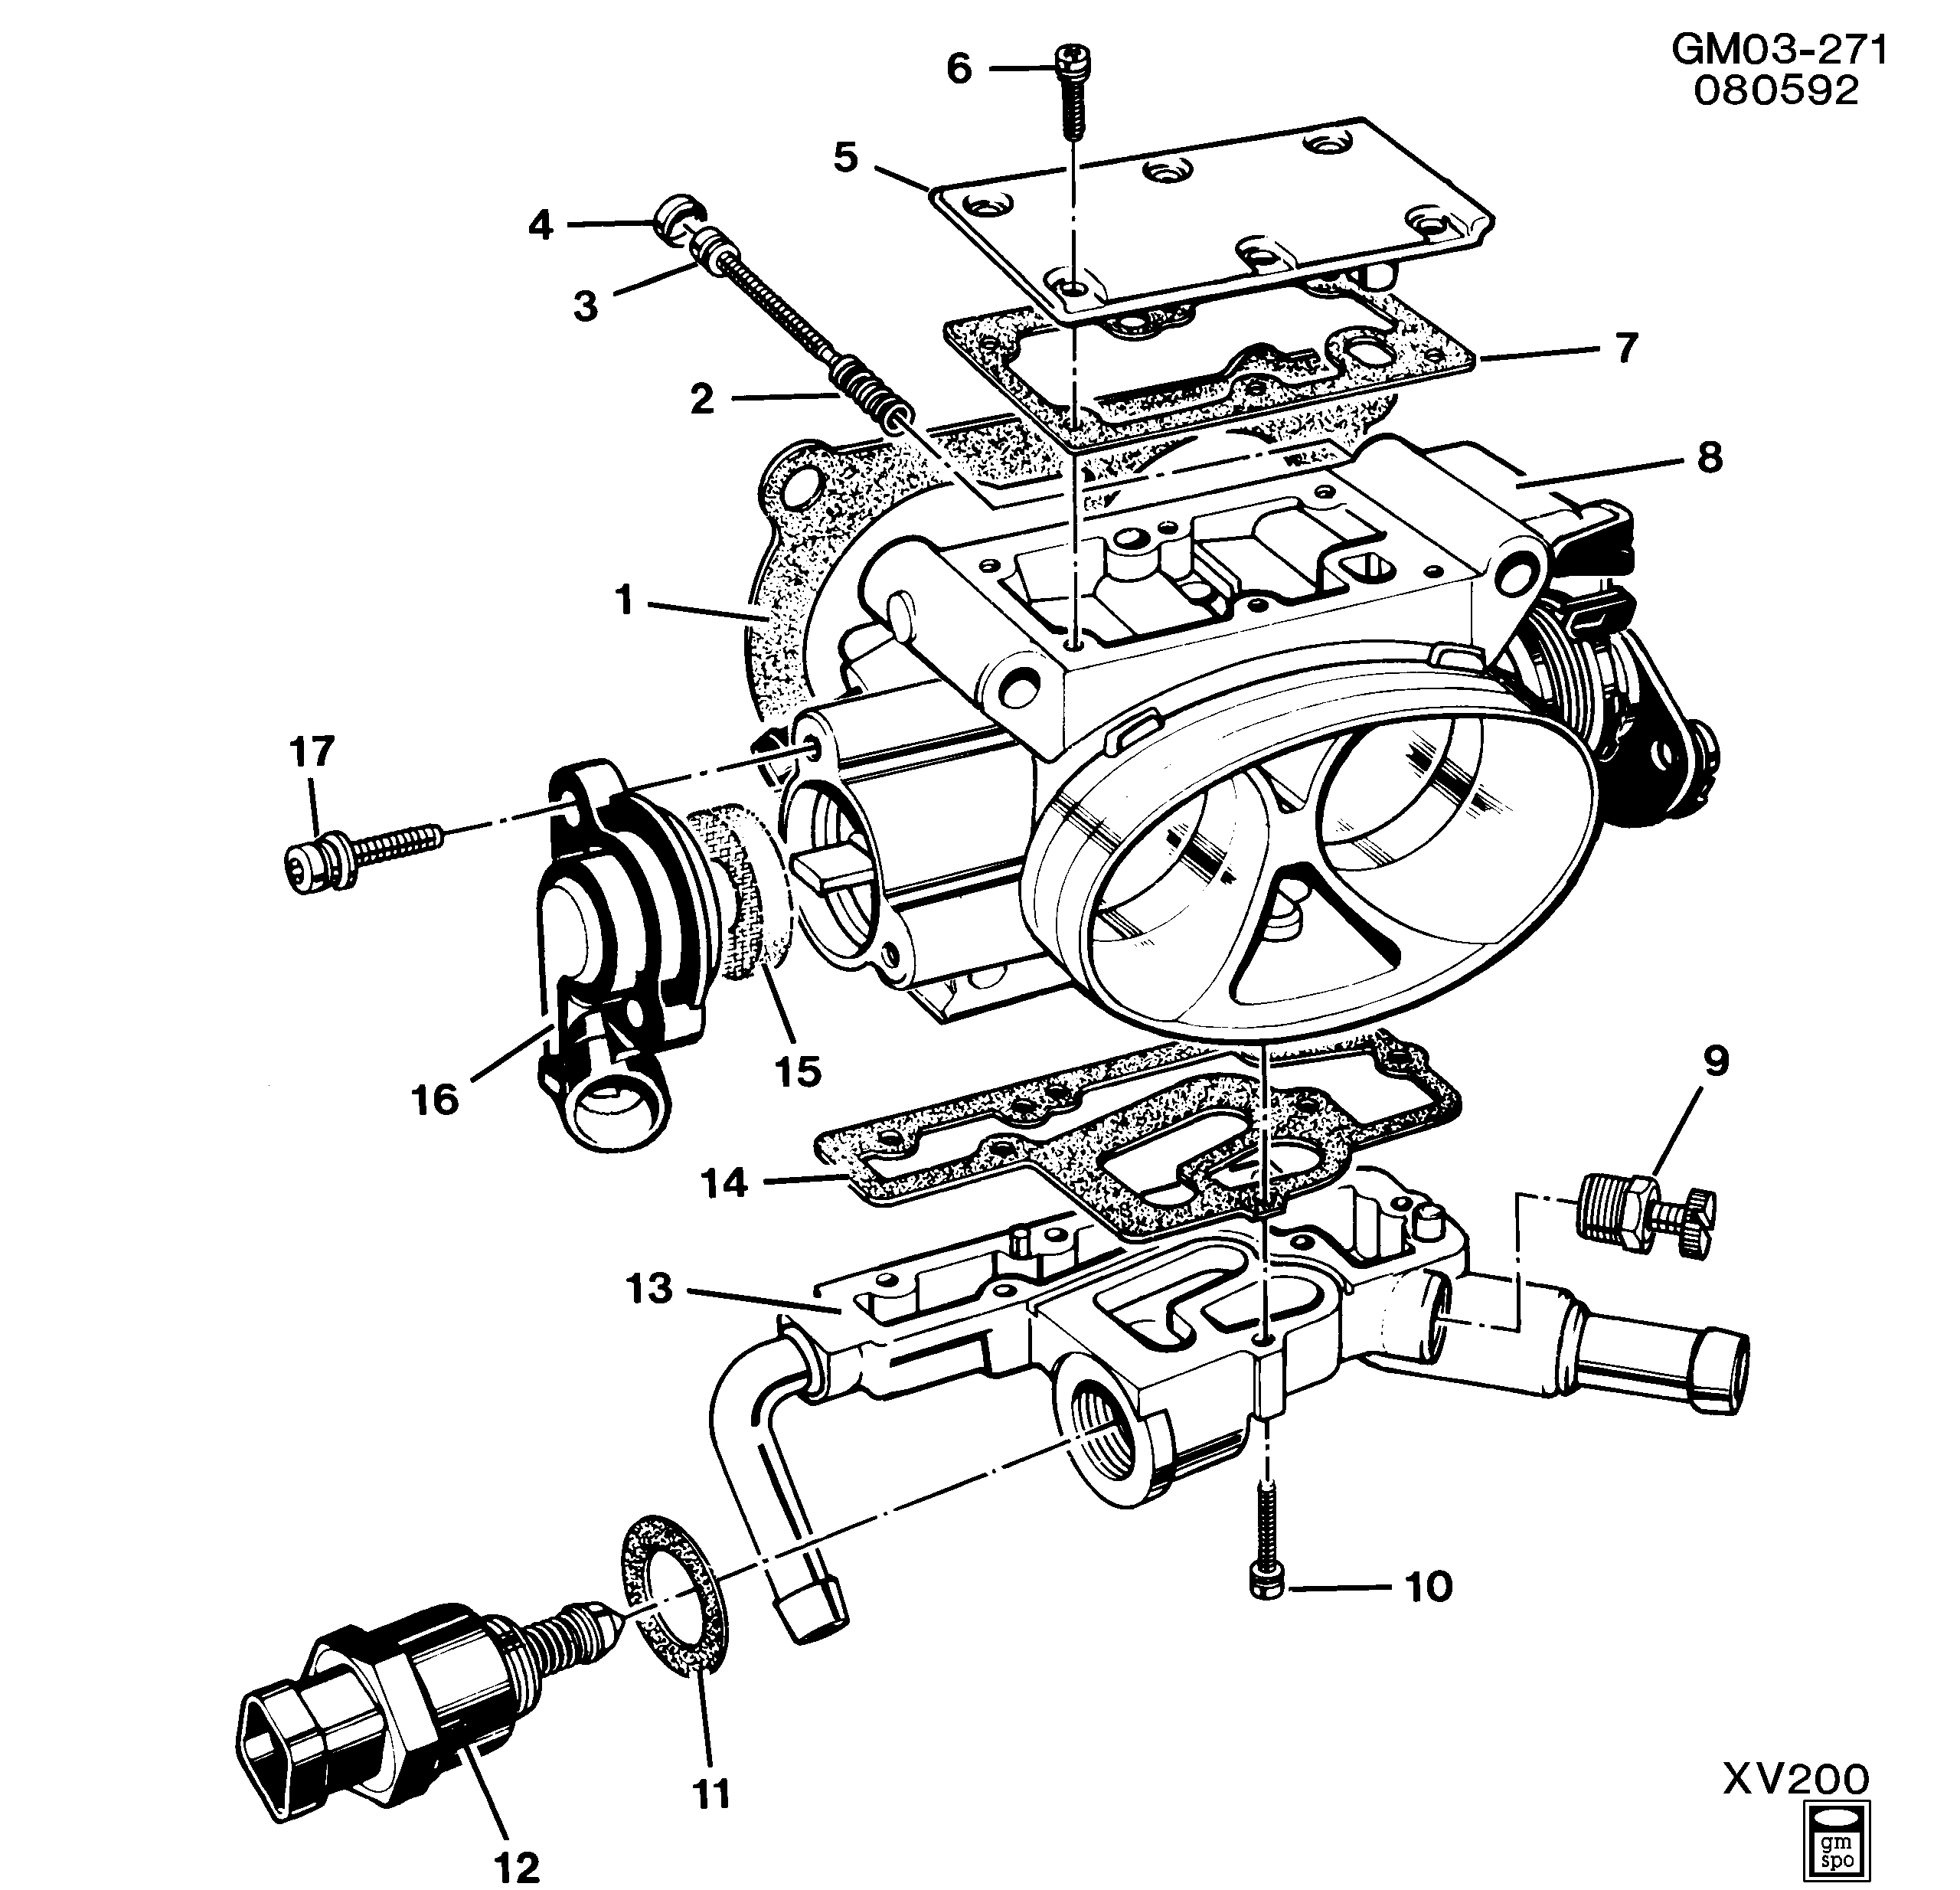 Pontiac Firebird Lt1 Engine Diagram